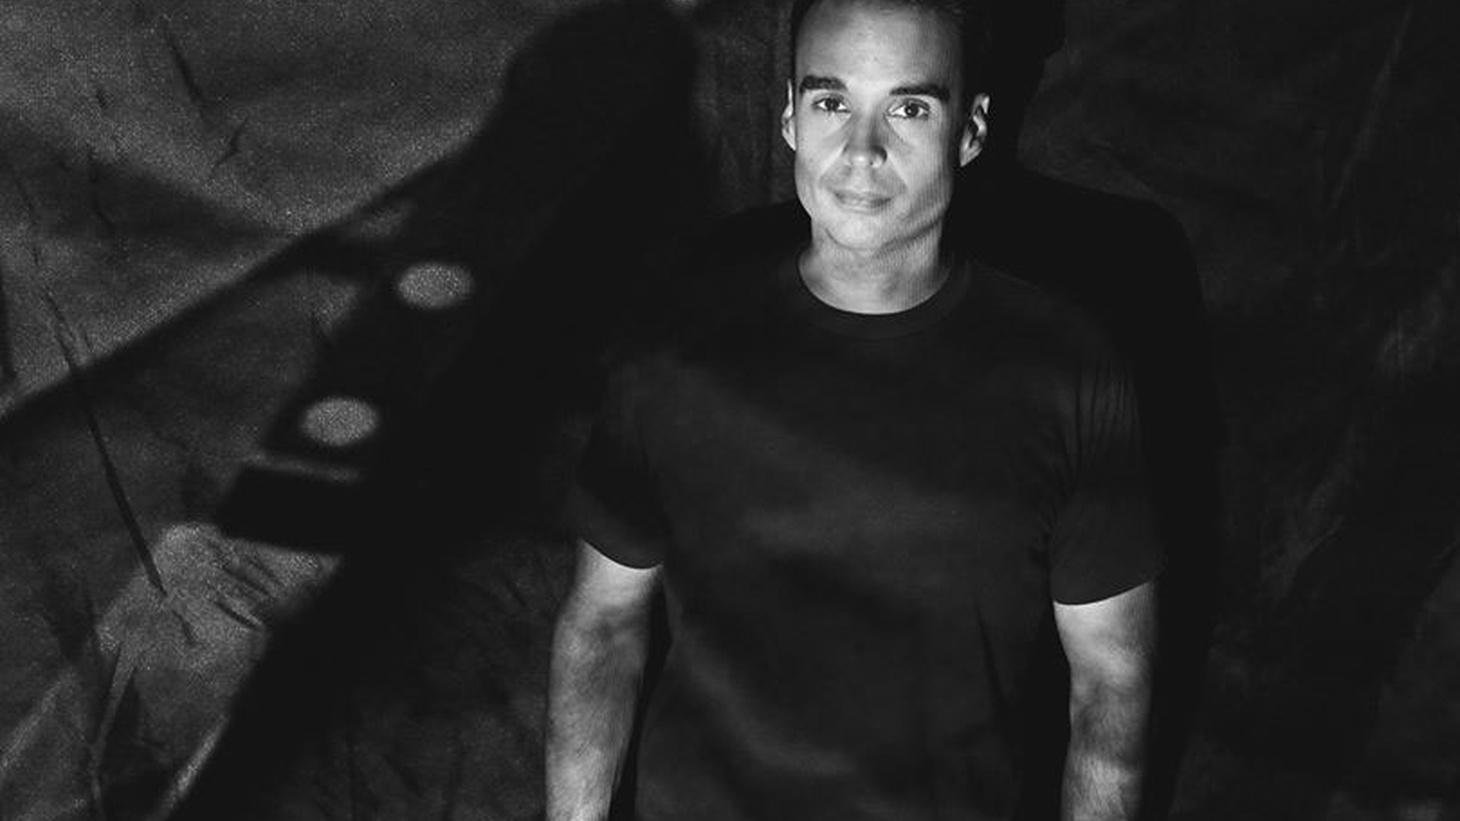 As John Tejada gears up to release a new album in 2015, he's sharing a sparking new track as an exclusive for KCRW listeners.